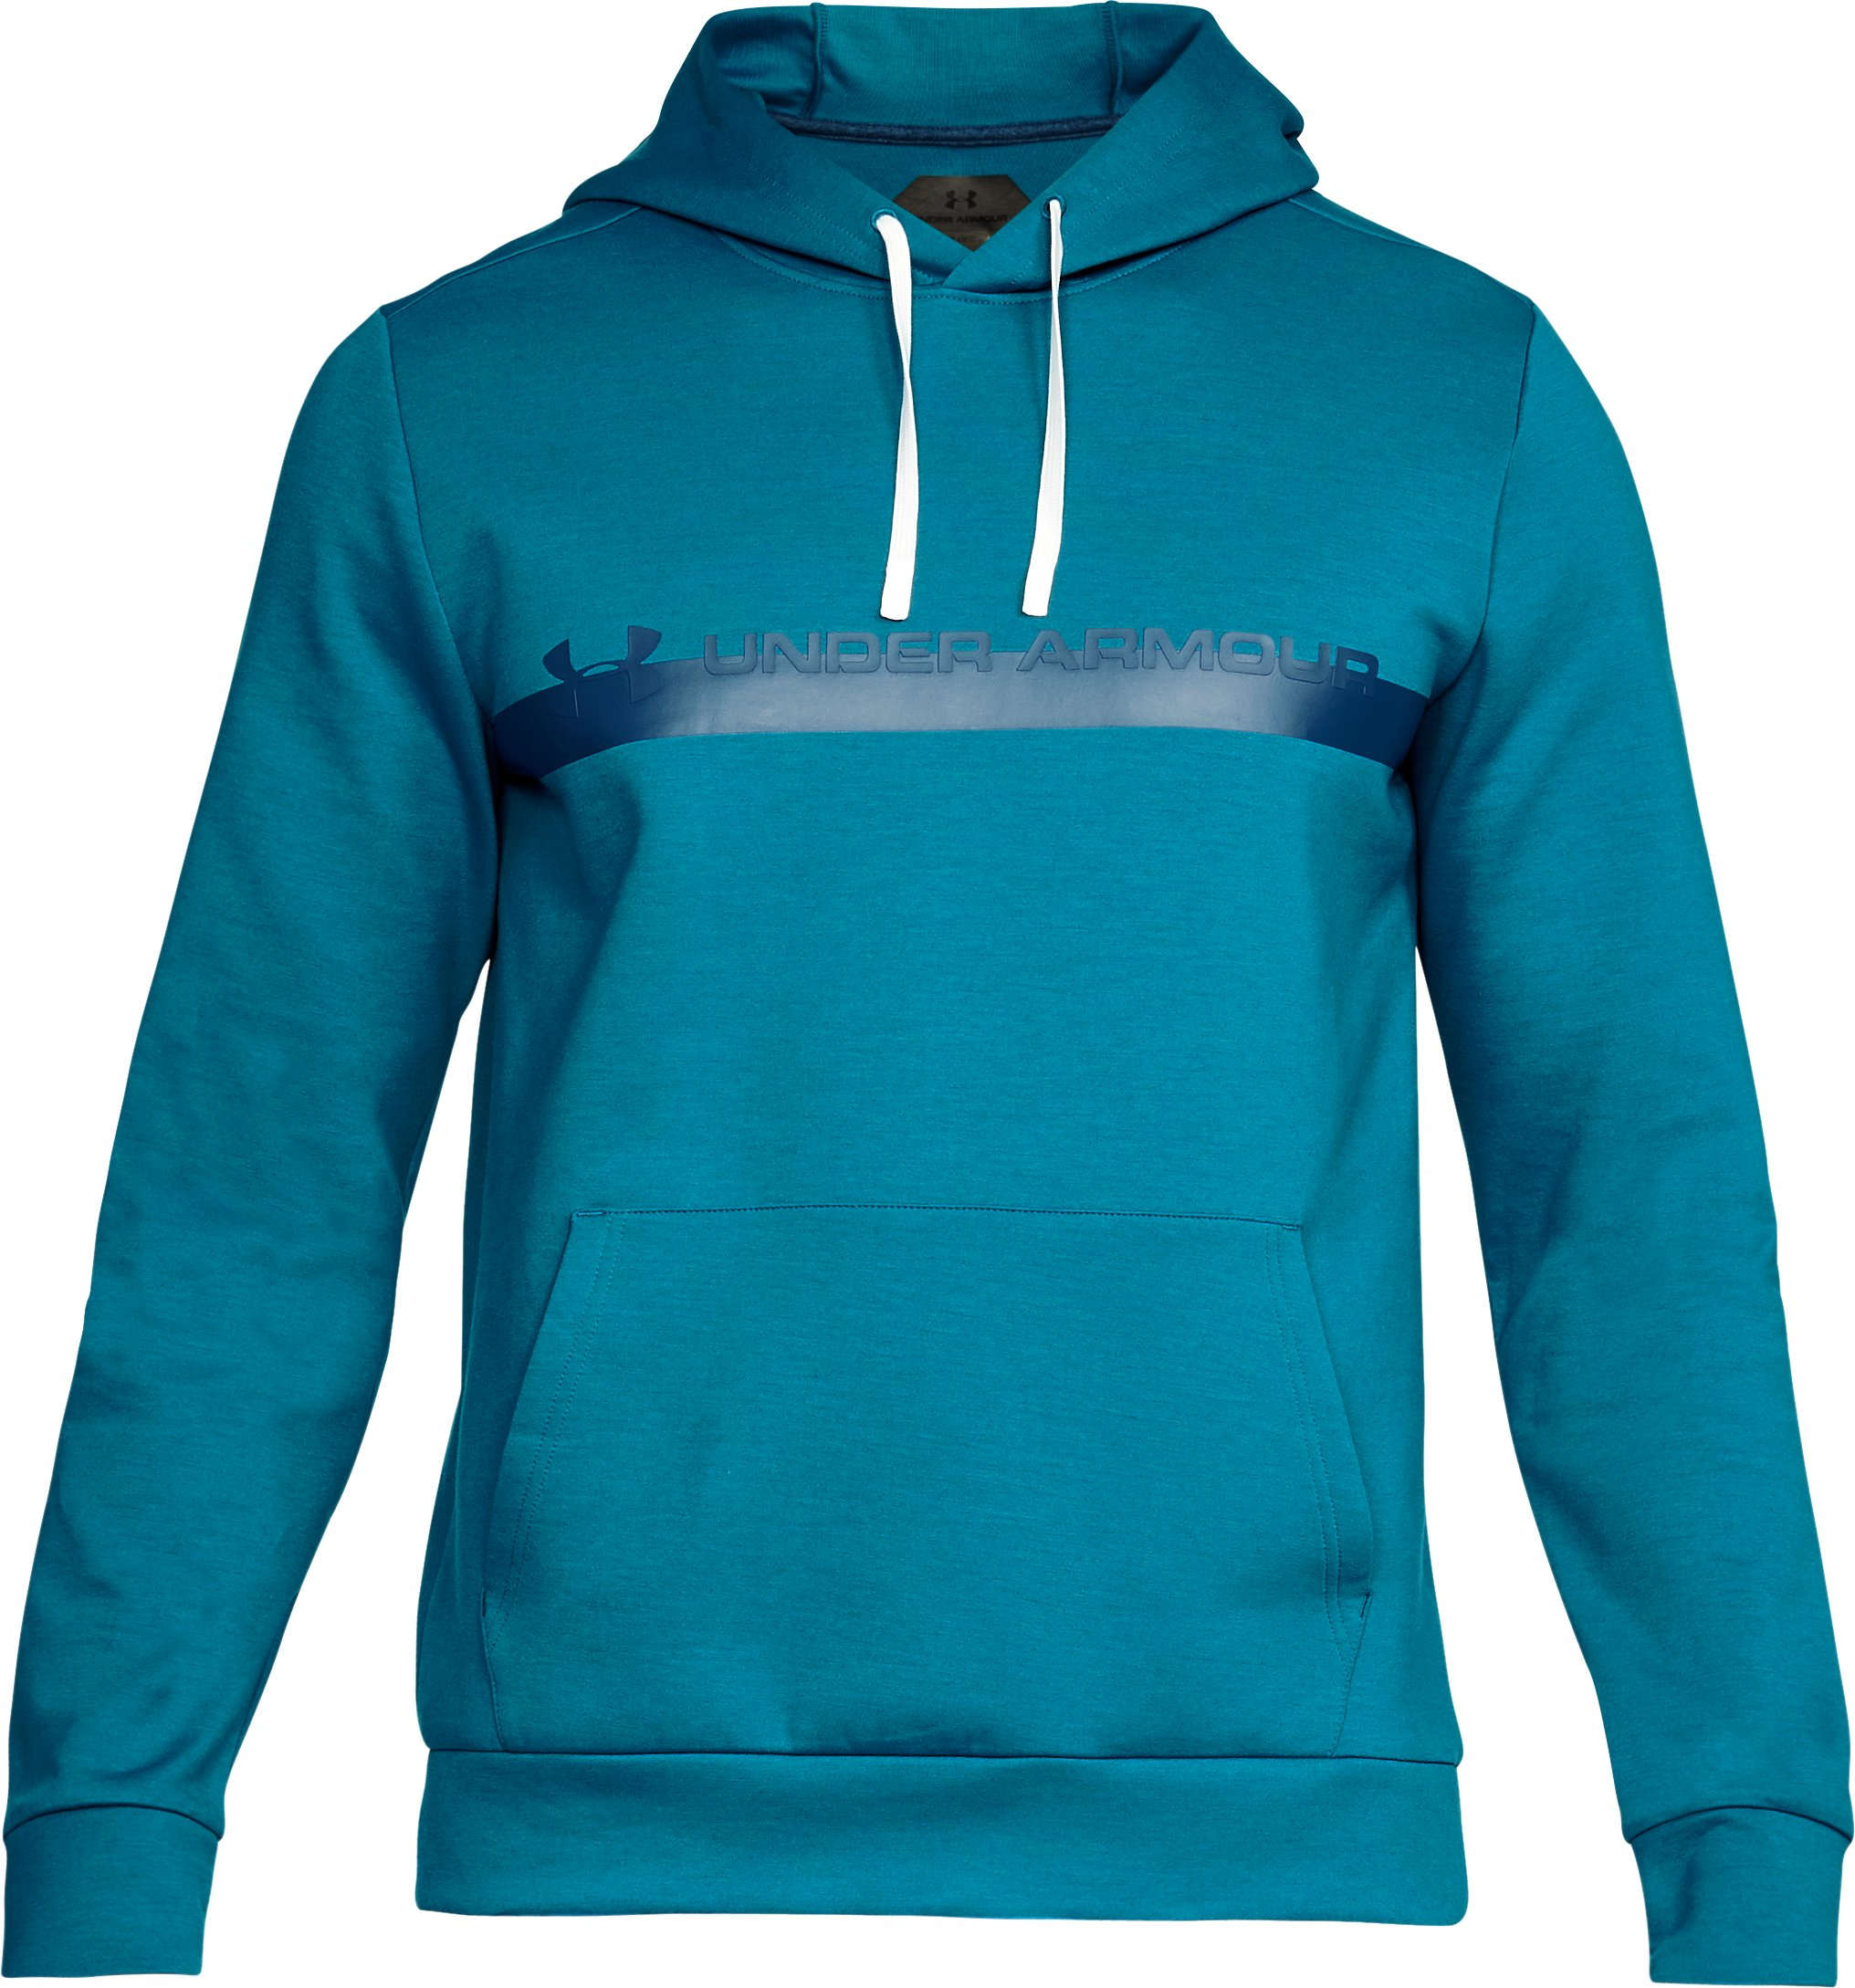 Men's UA Unstoppable Knit Hoodie, OCEAN BLUE, undefined